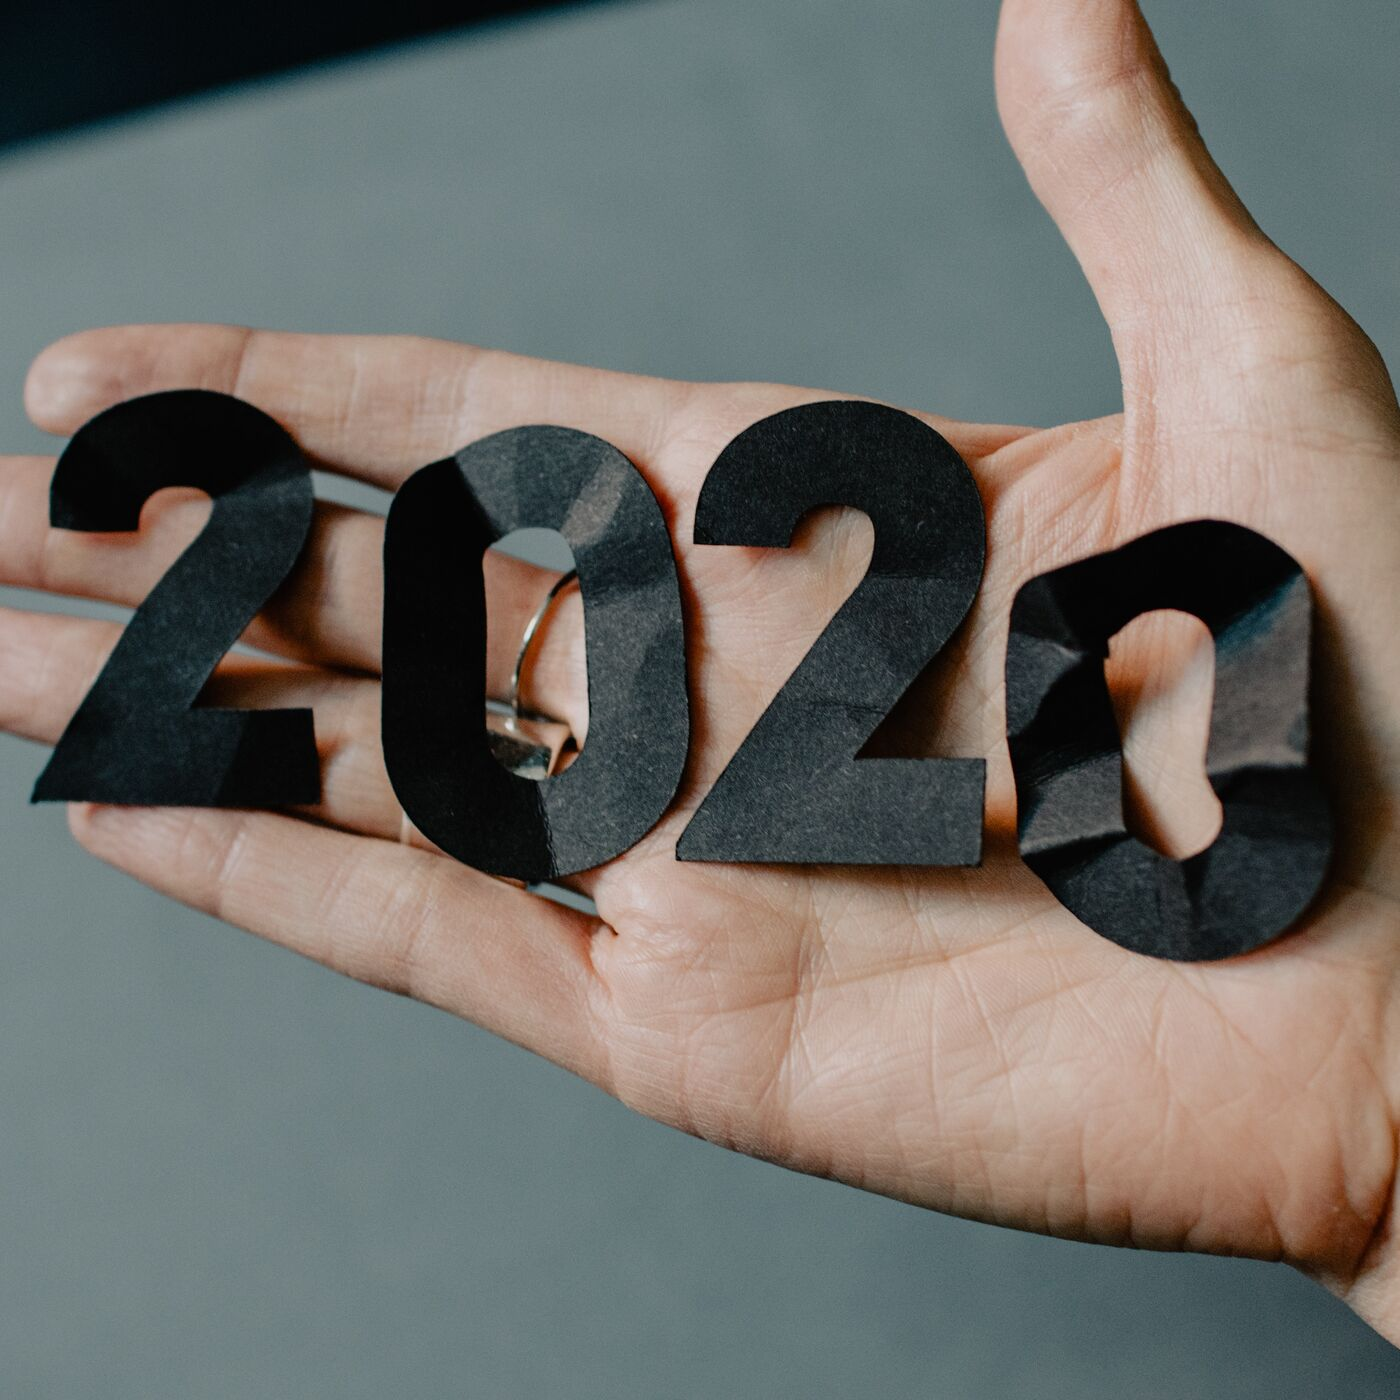 2020 Year in Brief